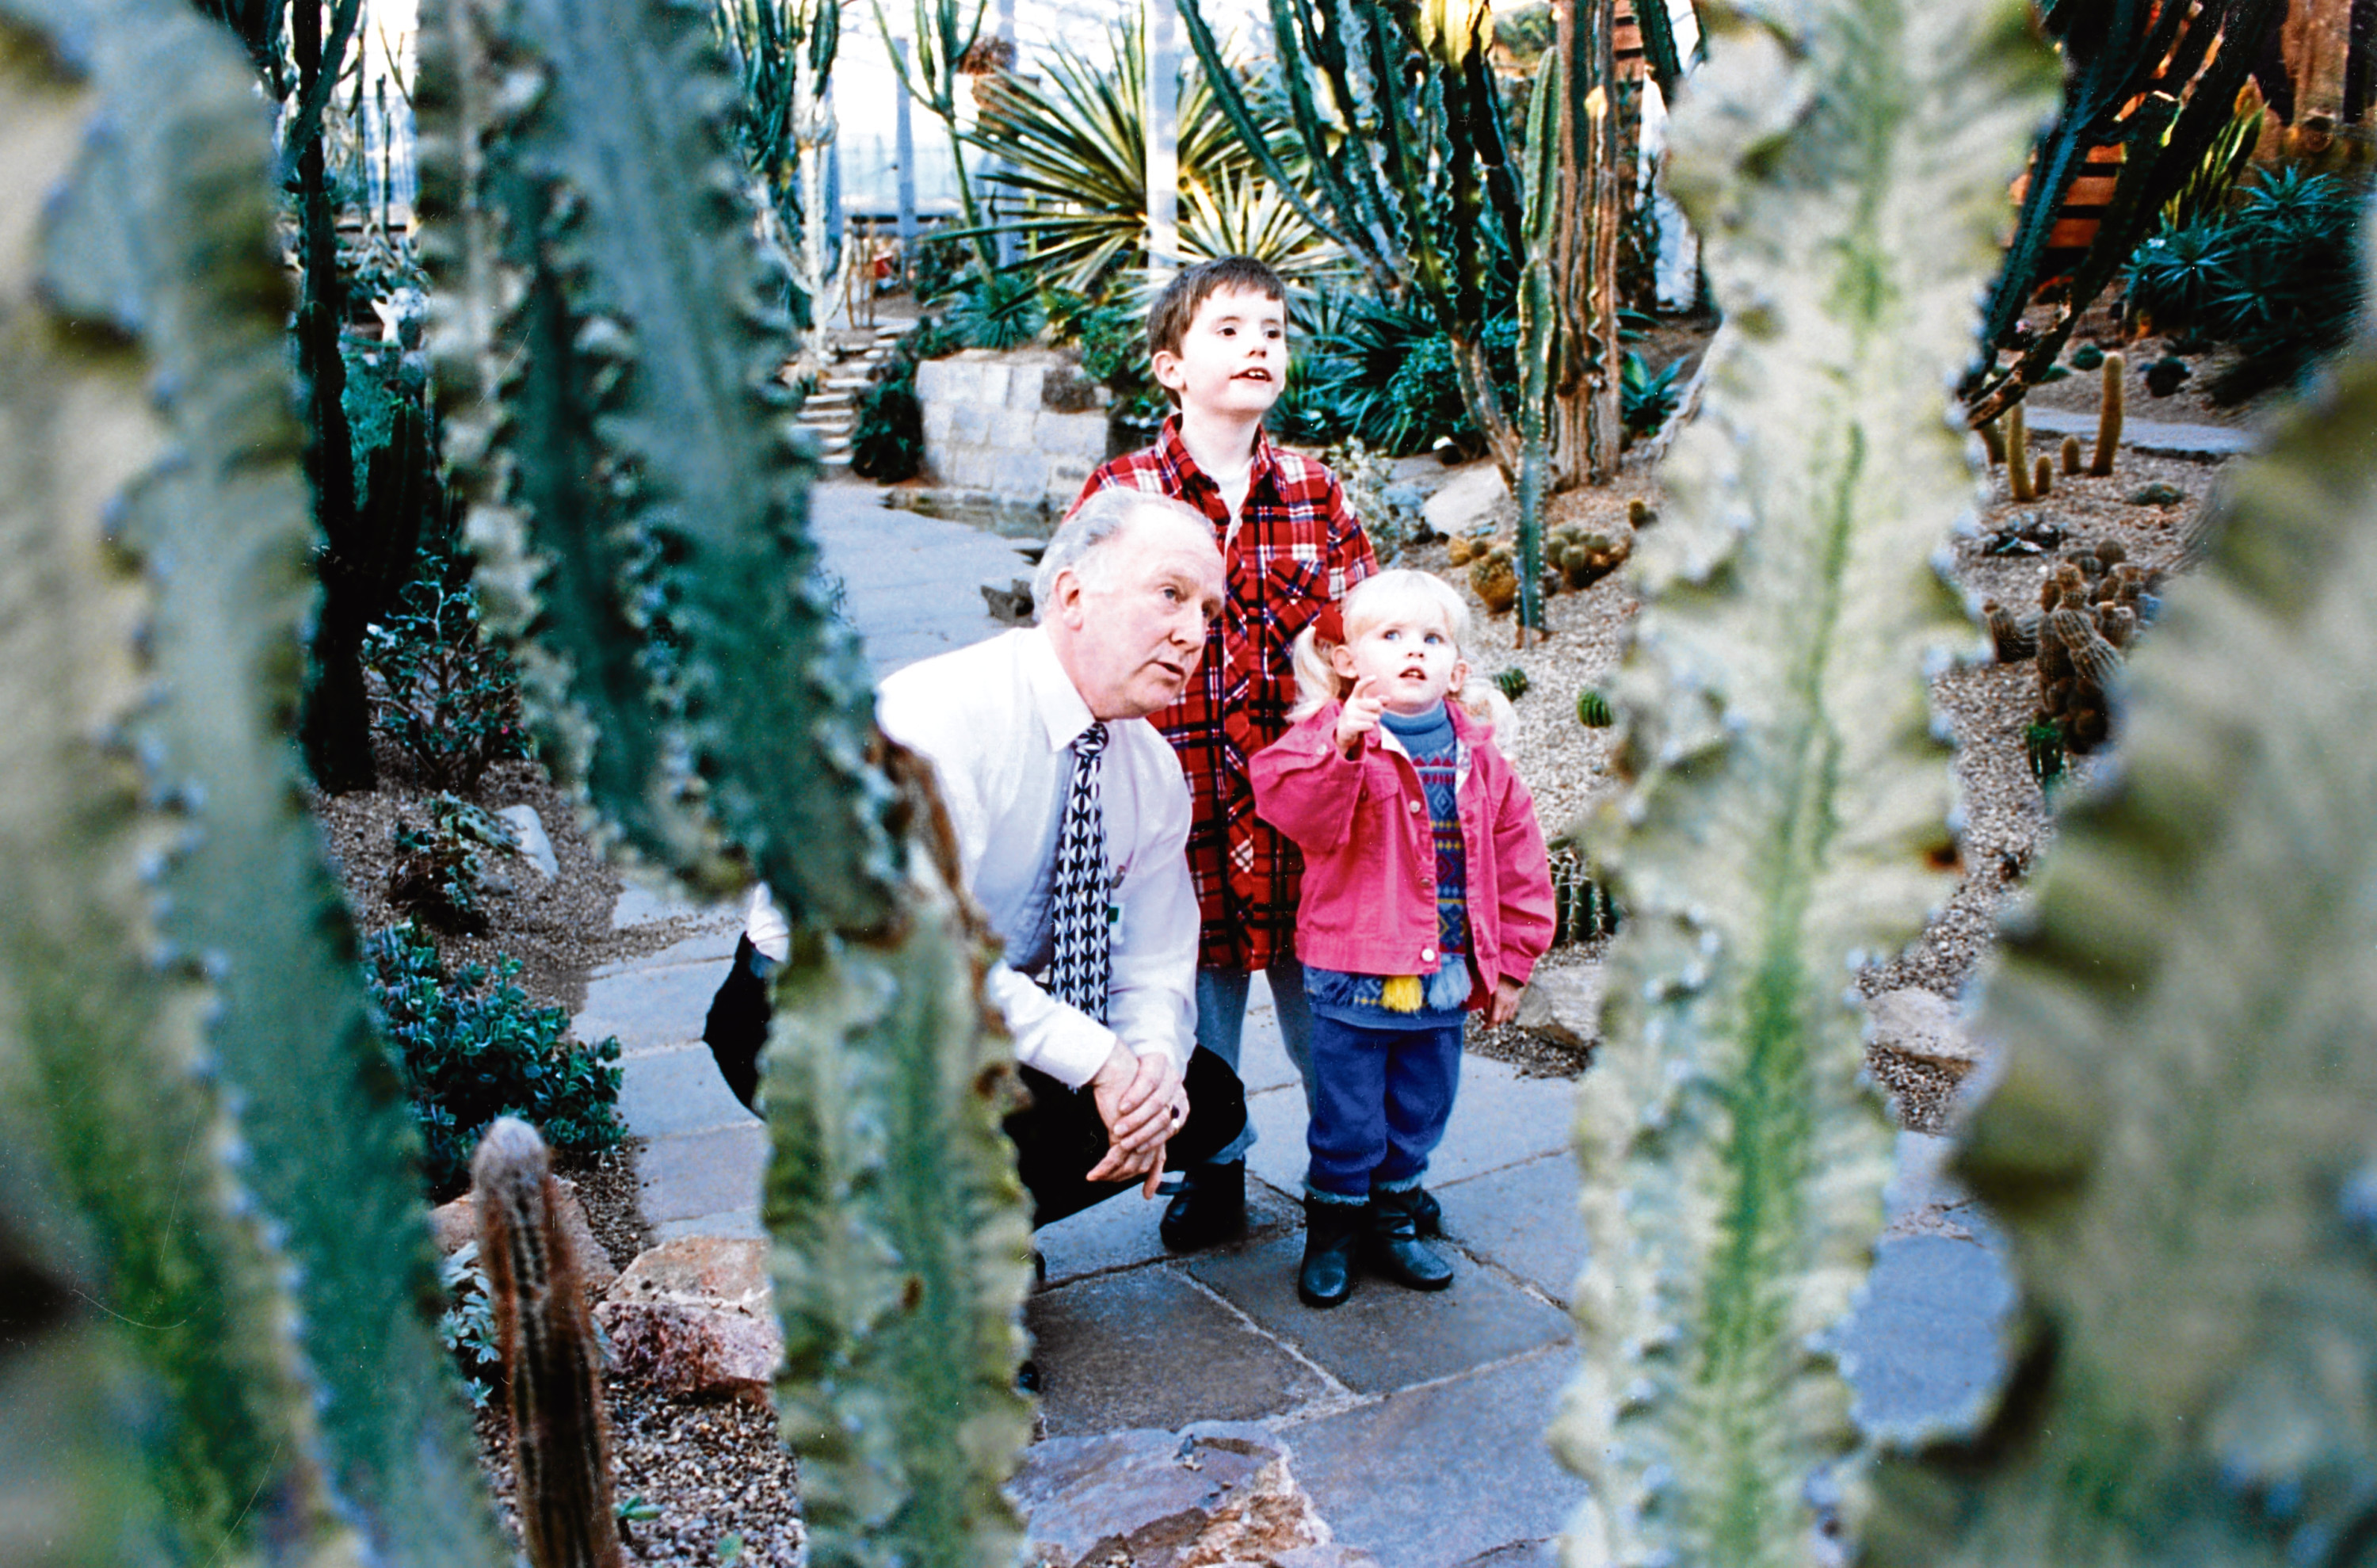 1994: George Park shows Quintos Henderson, 8, and his sister Gemma, 3, from Maud, round the Giant Cactus House in the Winter Gardens.